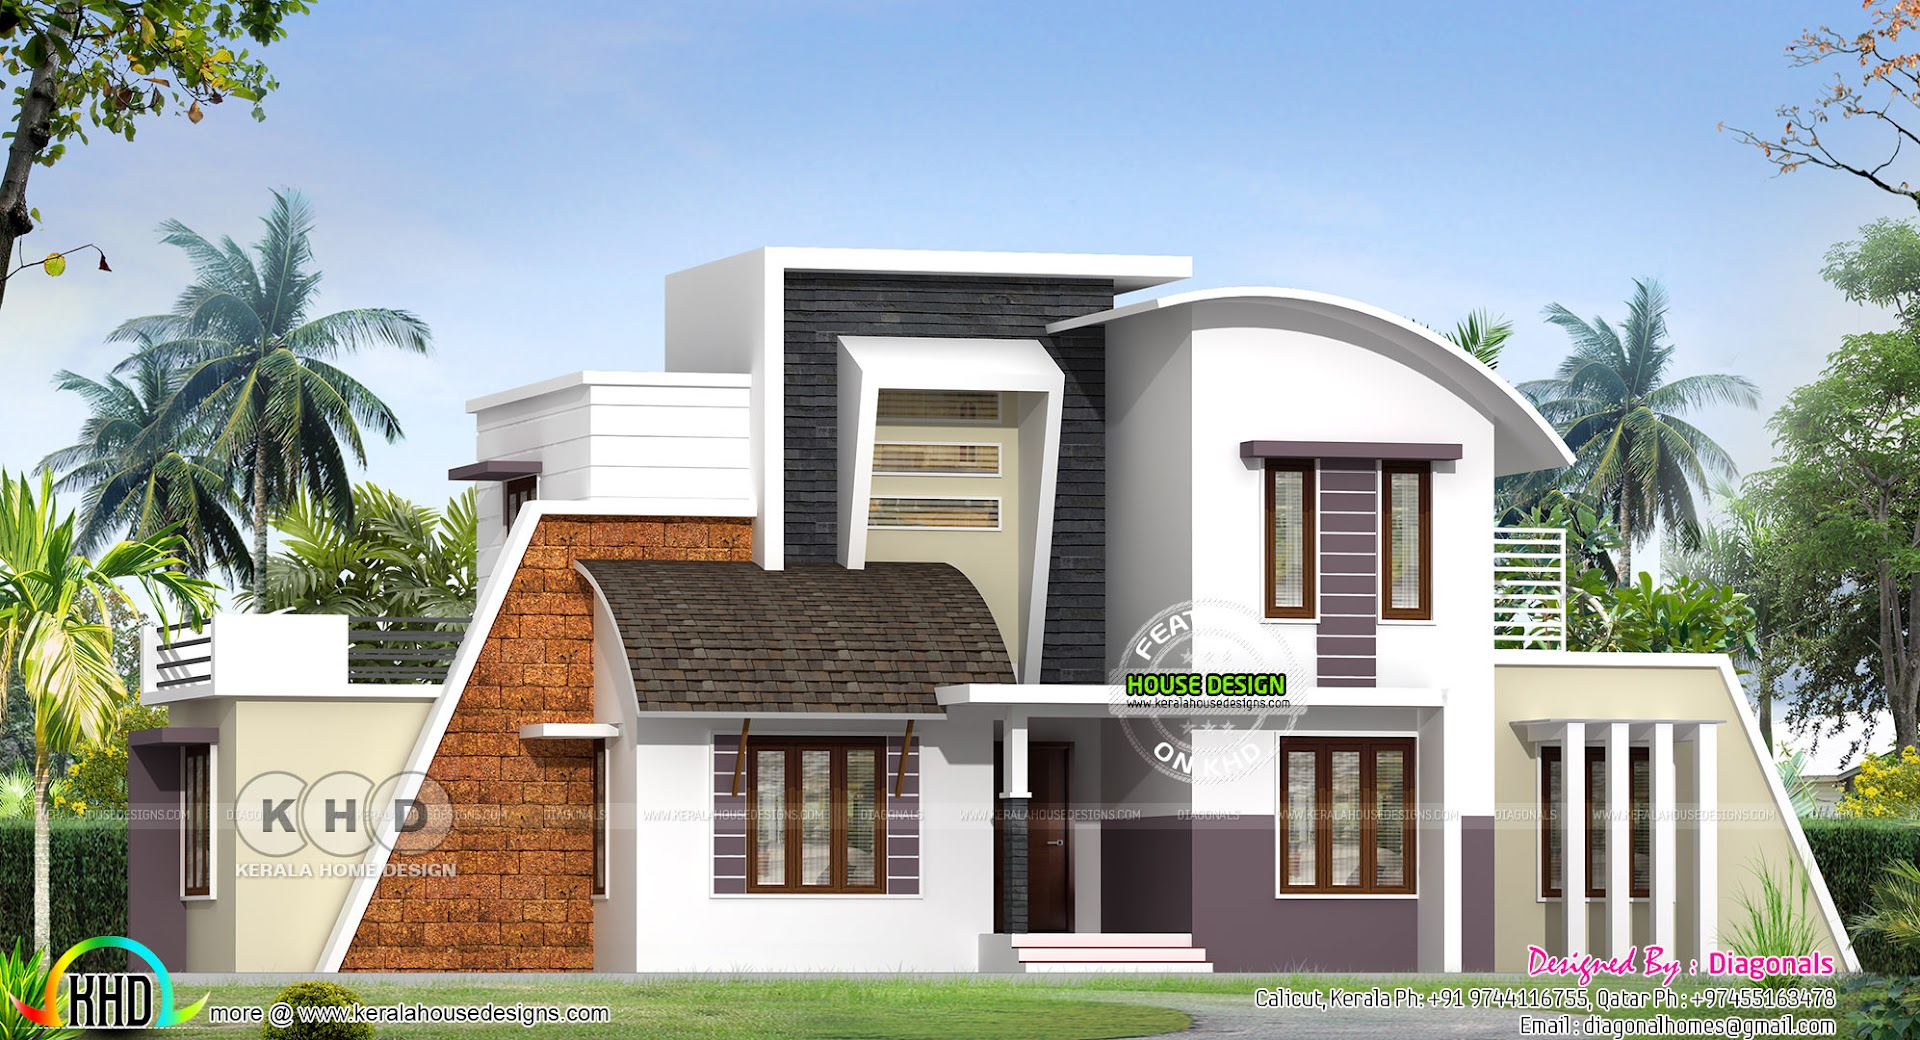 Grand home 2298 sq ft contemporary style kerala home for Grand home designs